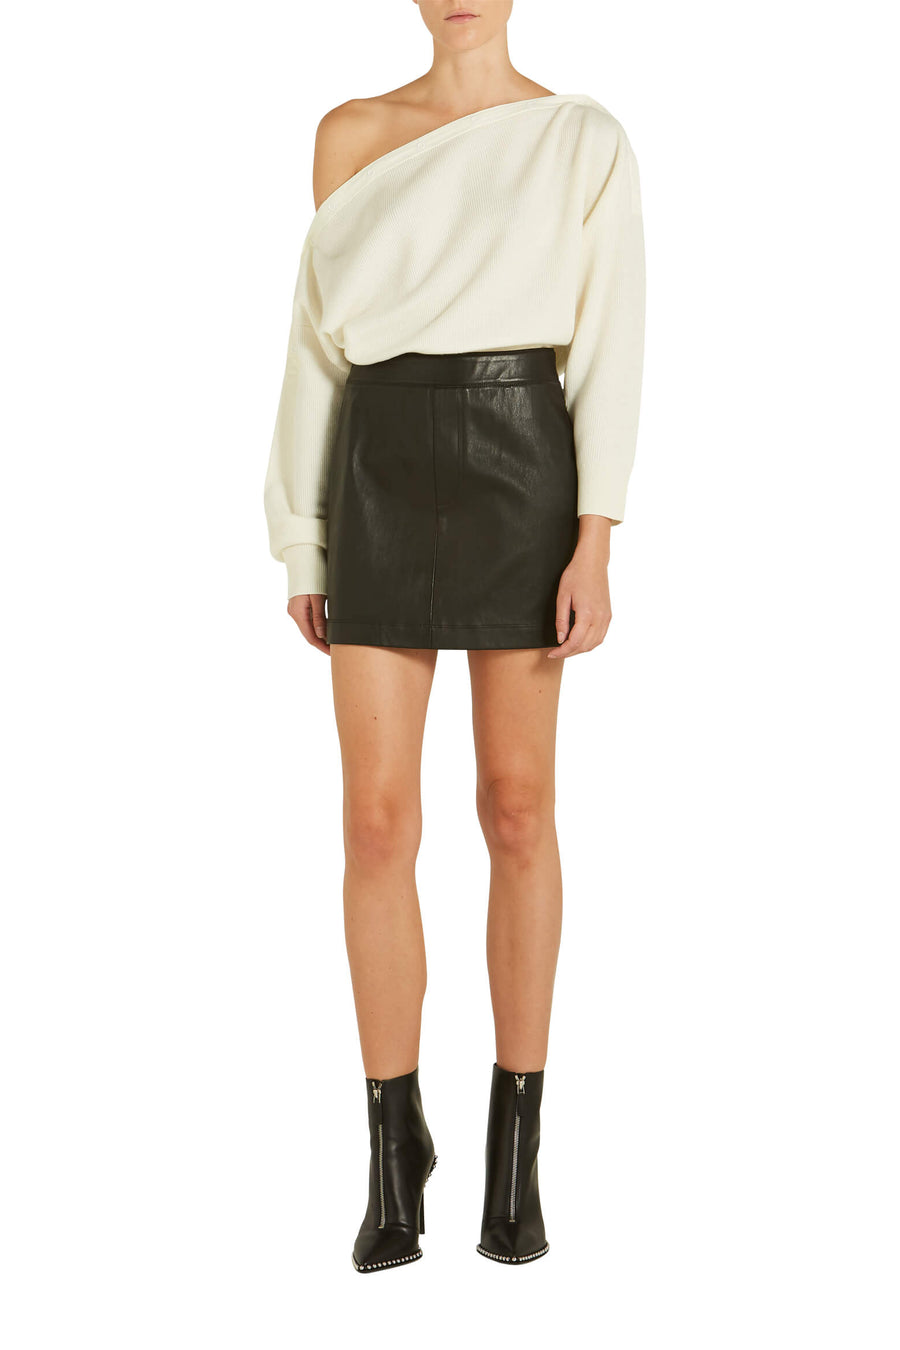 Helmut Lang Stretch Leather Mini Skirt from The New Trend Default